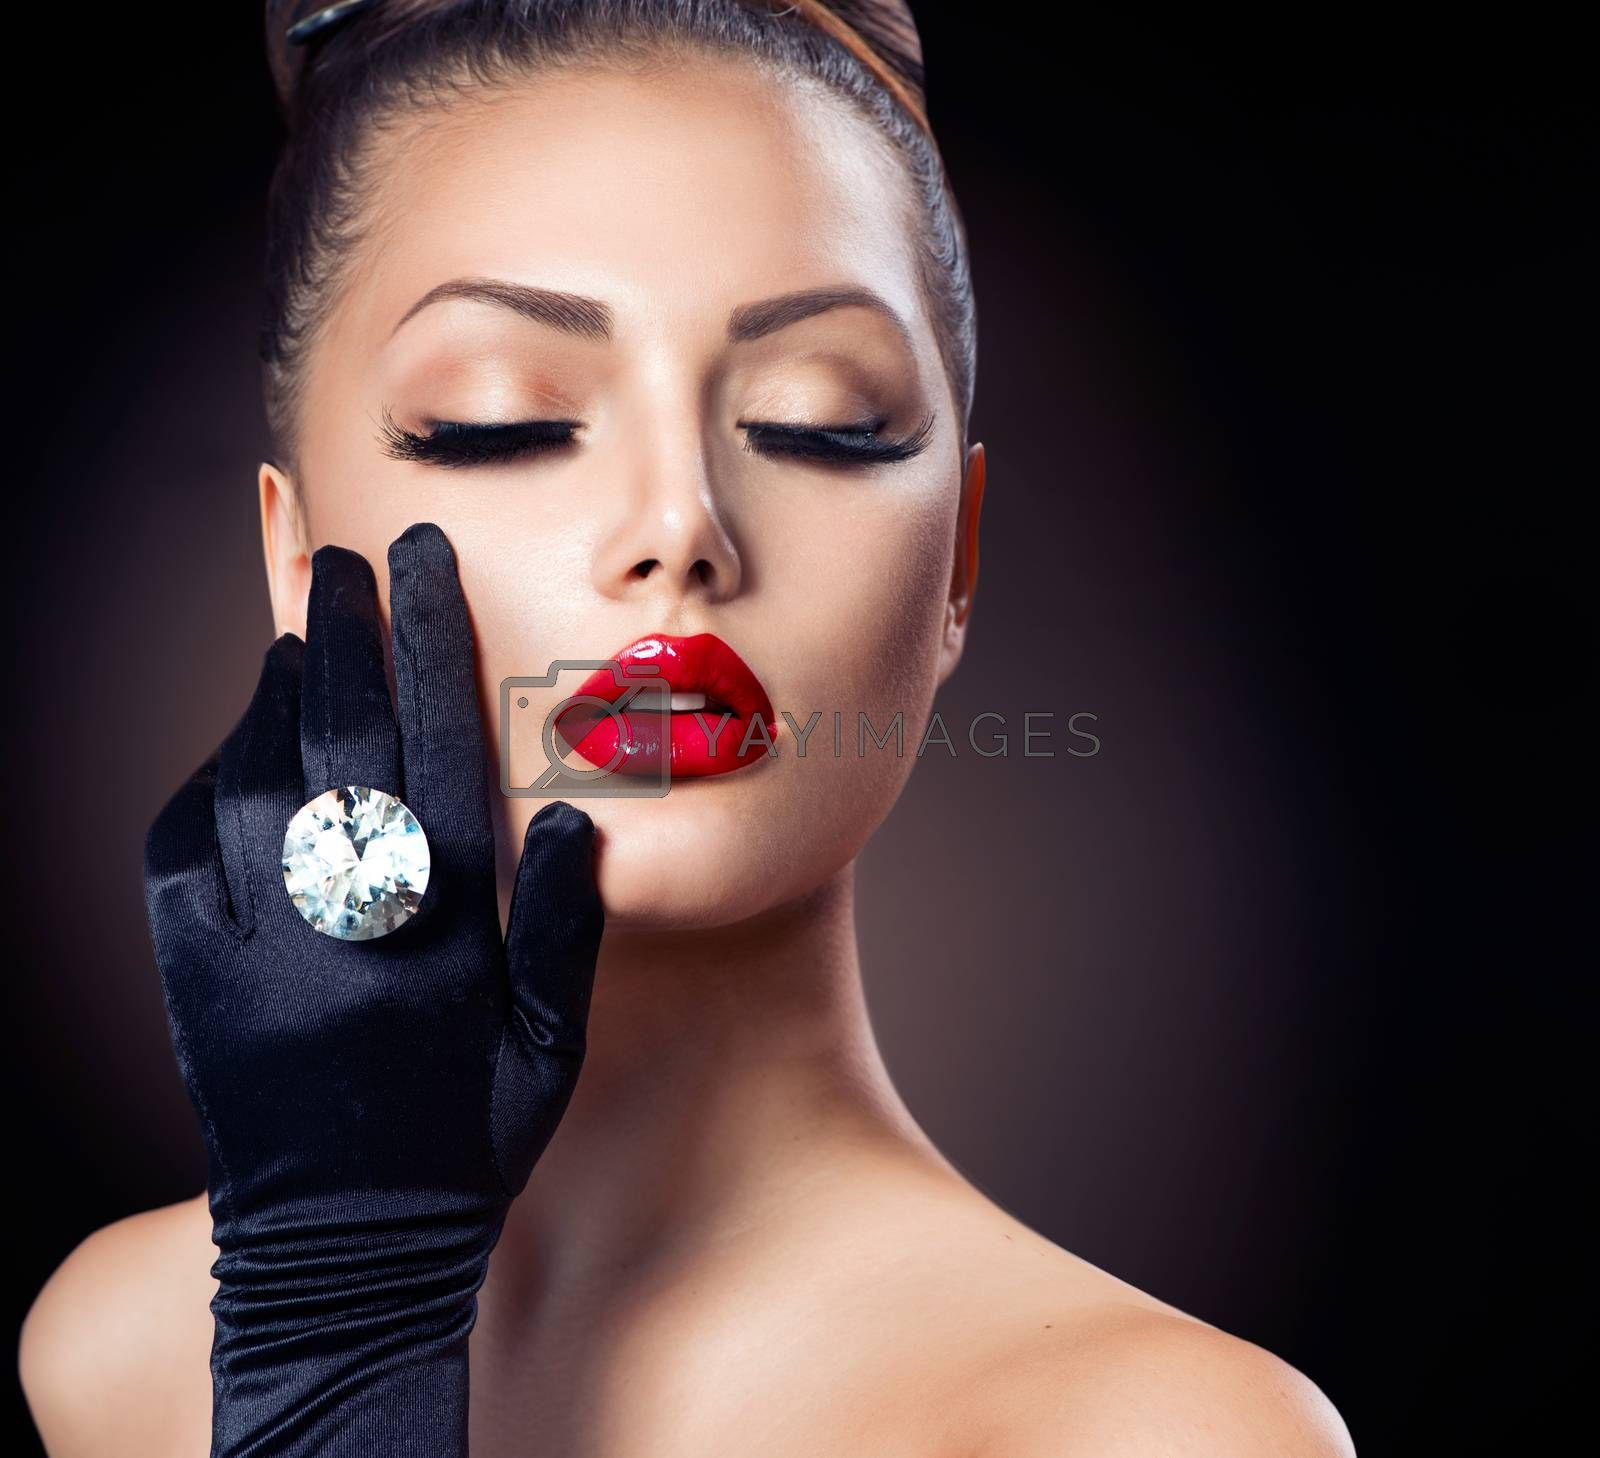 Royalty free image of Beauty Fashion Glamour Girl Portrait over Black by SubbotinaA